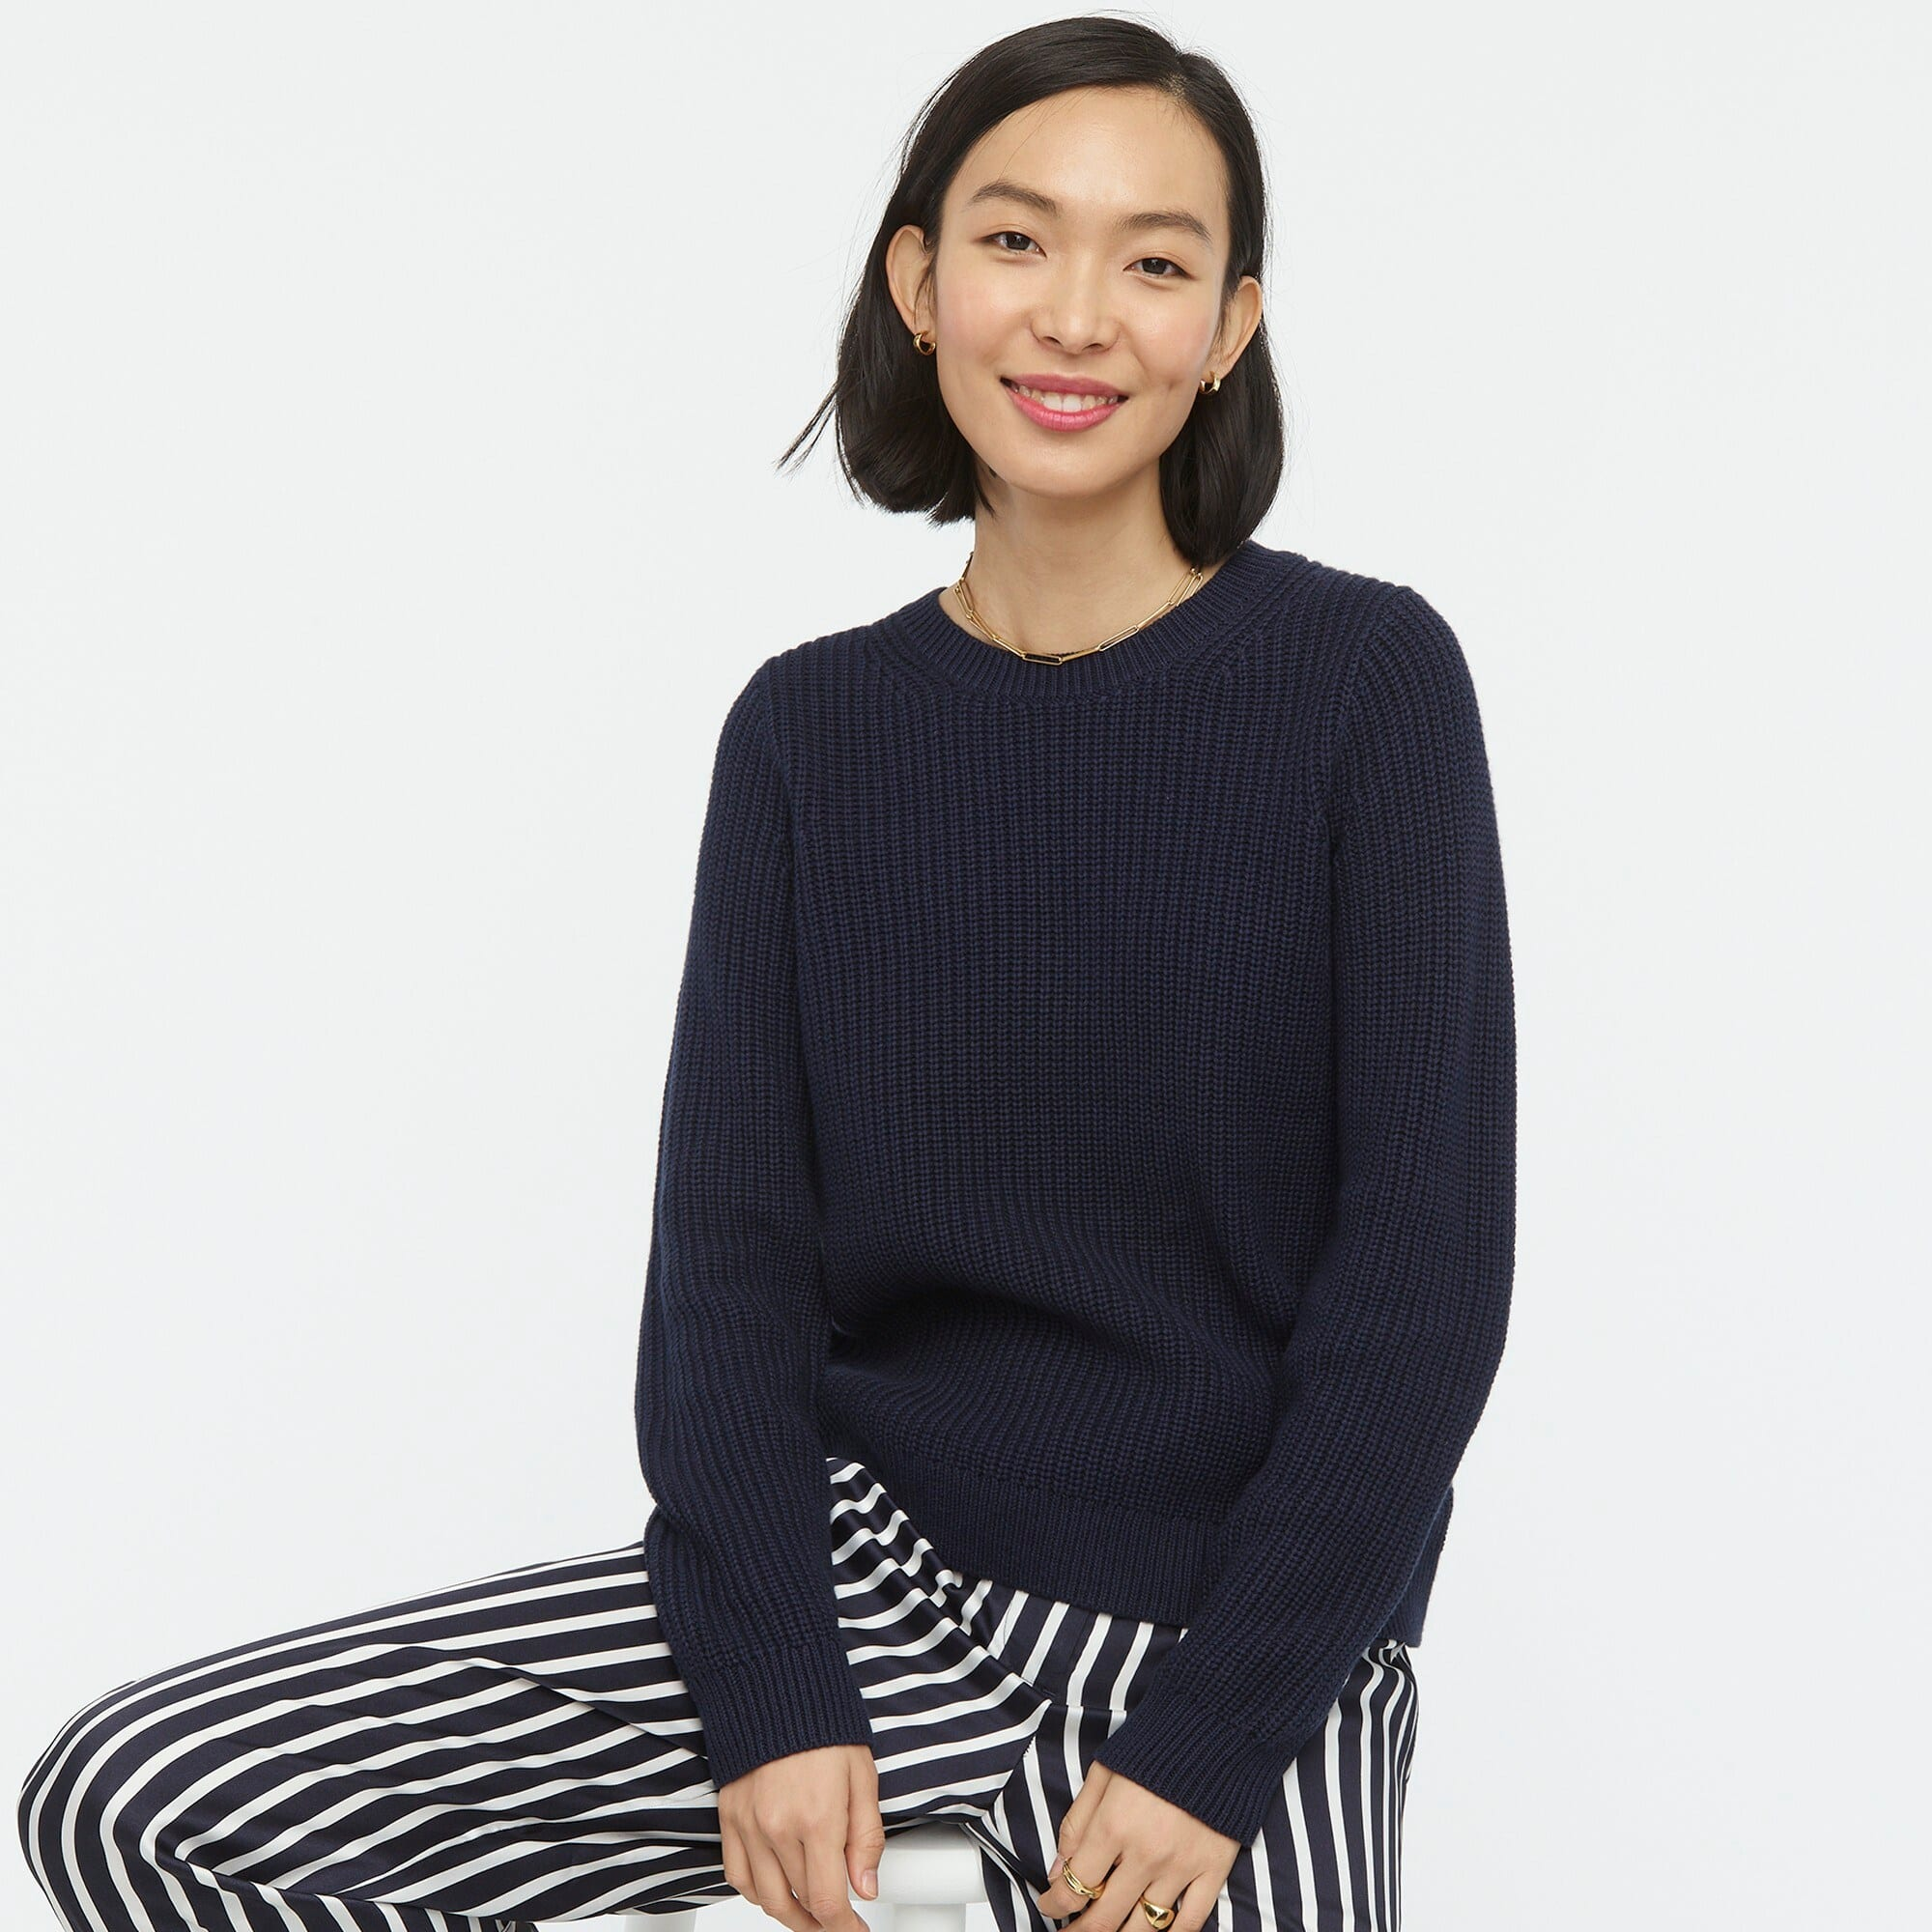 J. Crew: Up To 50% Off New Arrivals & more